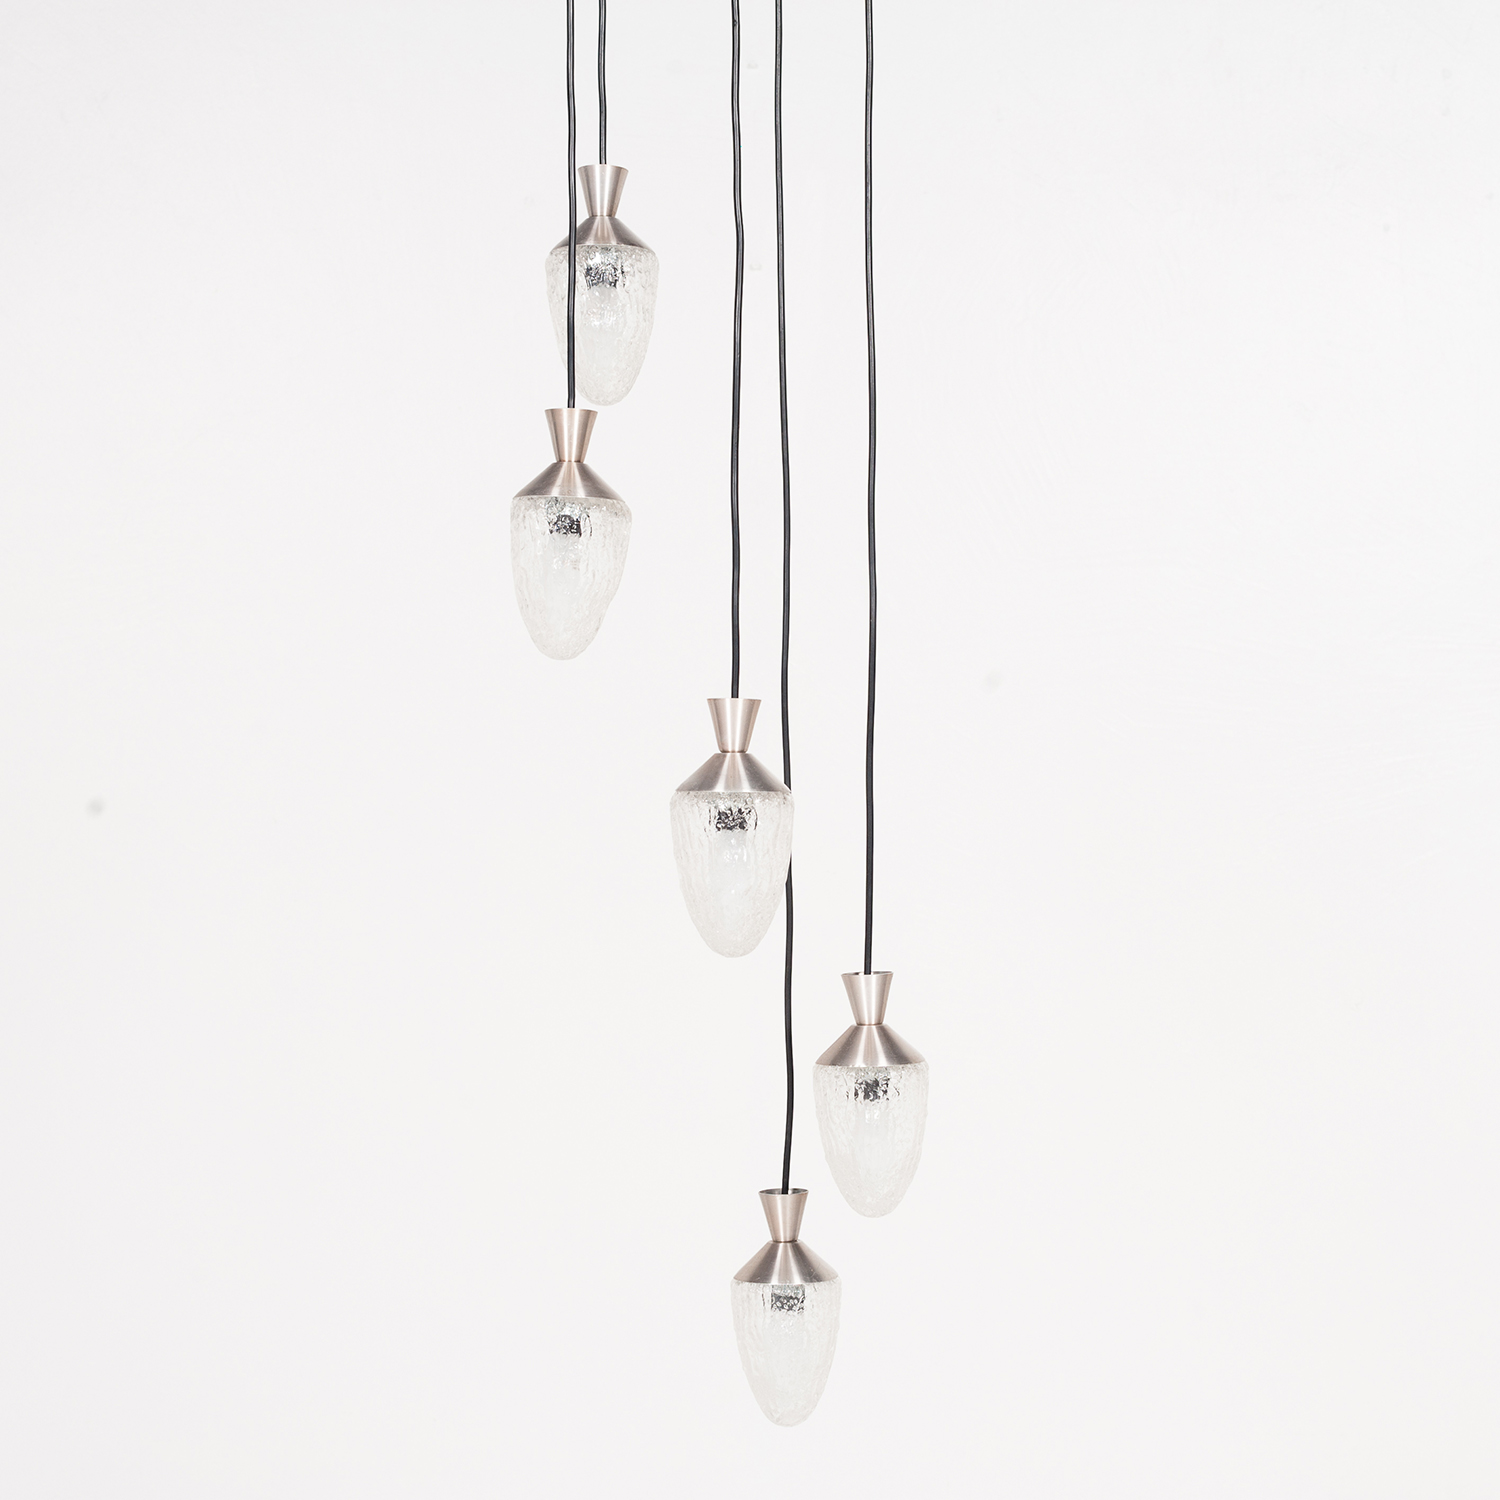 5 Piece Pendant With Frosted Glass Bulbs, 1960s, The Netherlands 37